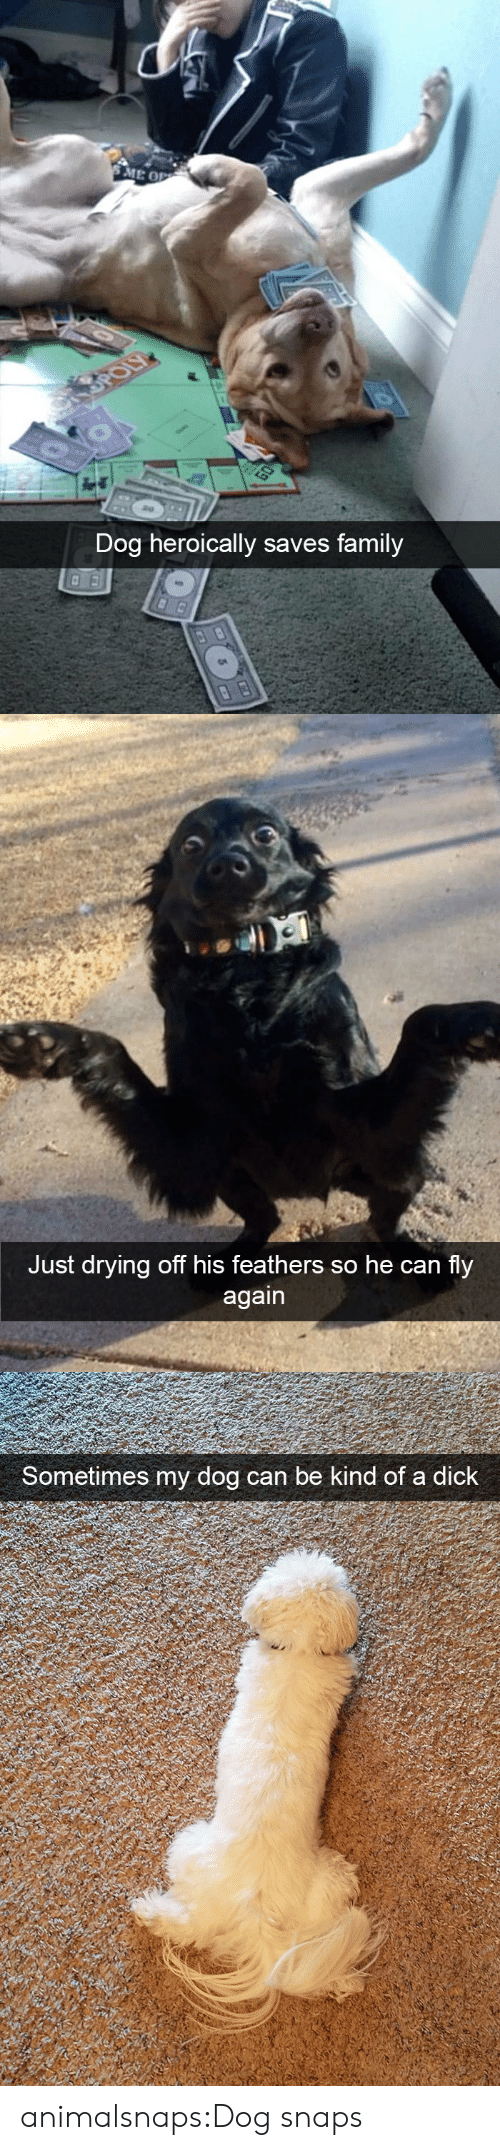 a dick: Dog heroically saves family   Just drying off his feathers so he can fly   Sometimes my dog can be  kind of a dick animalsnaps:Dog snaps